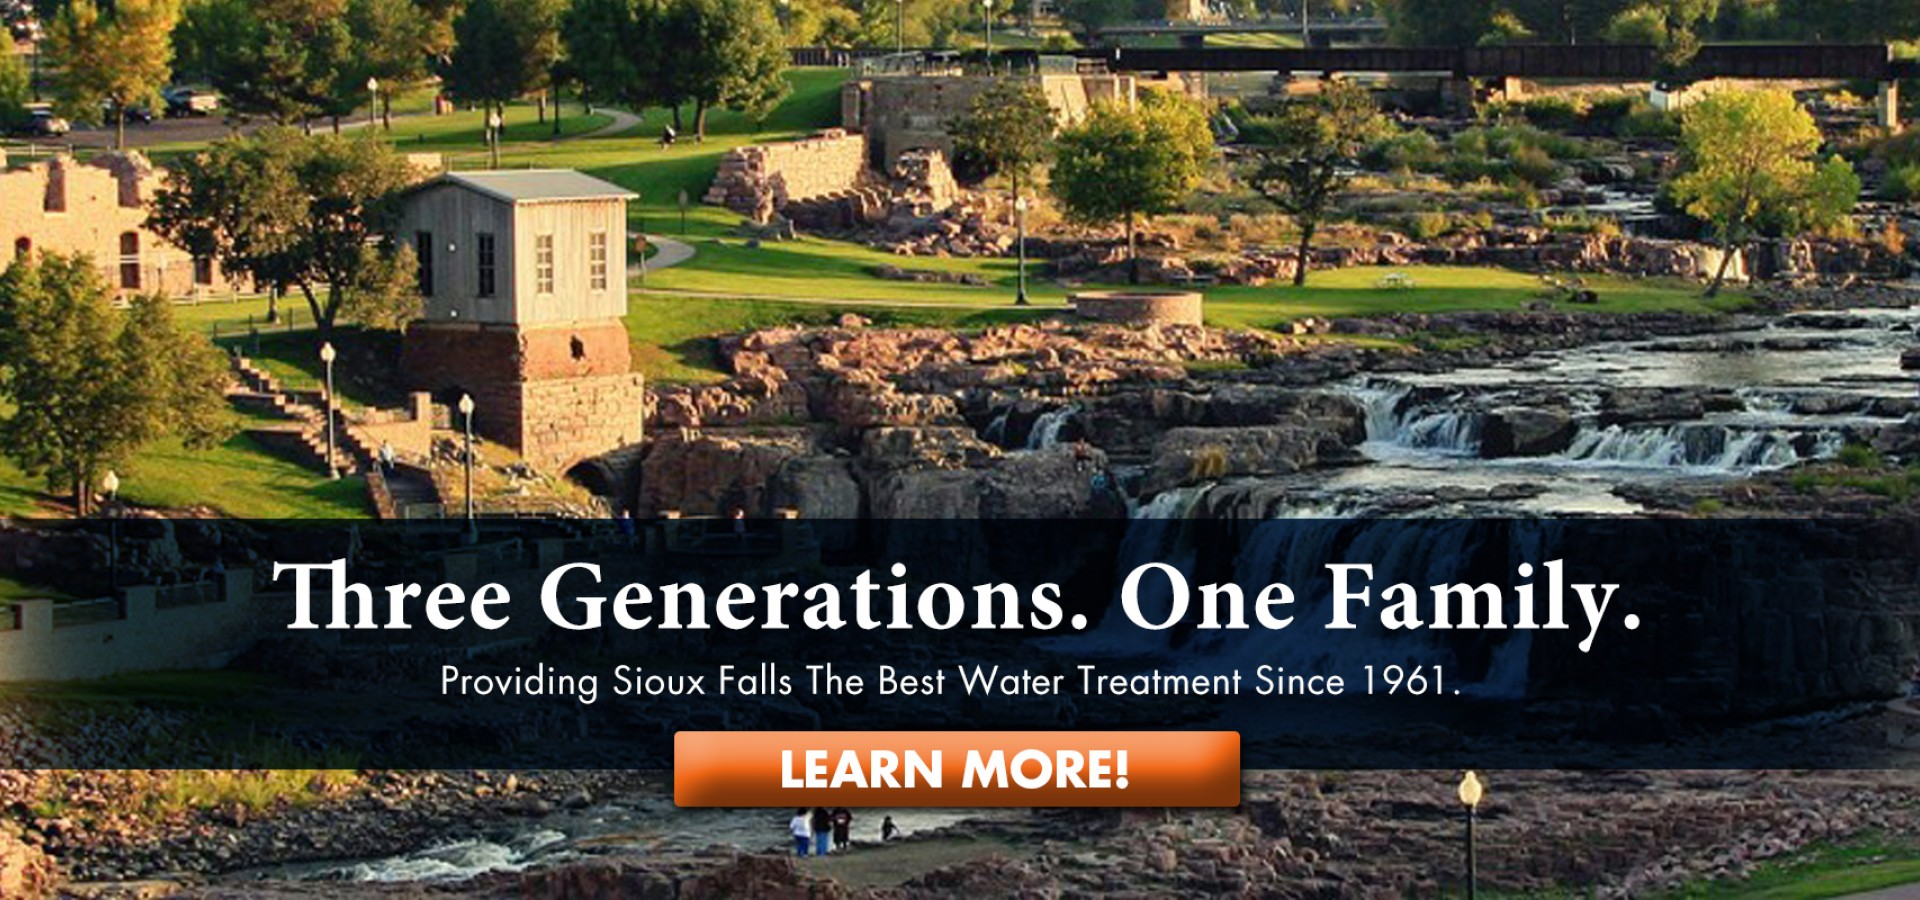 Welcome to Culligan Sioux Falls